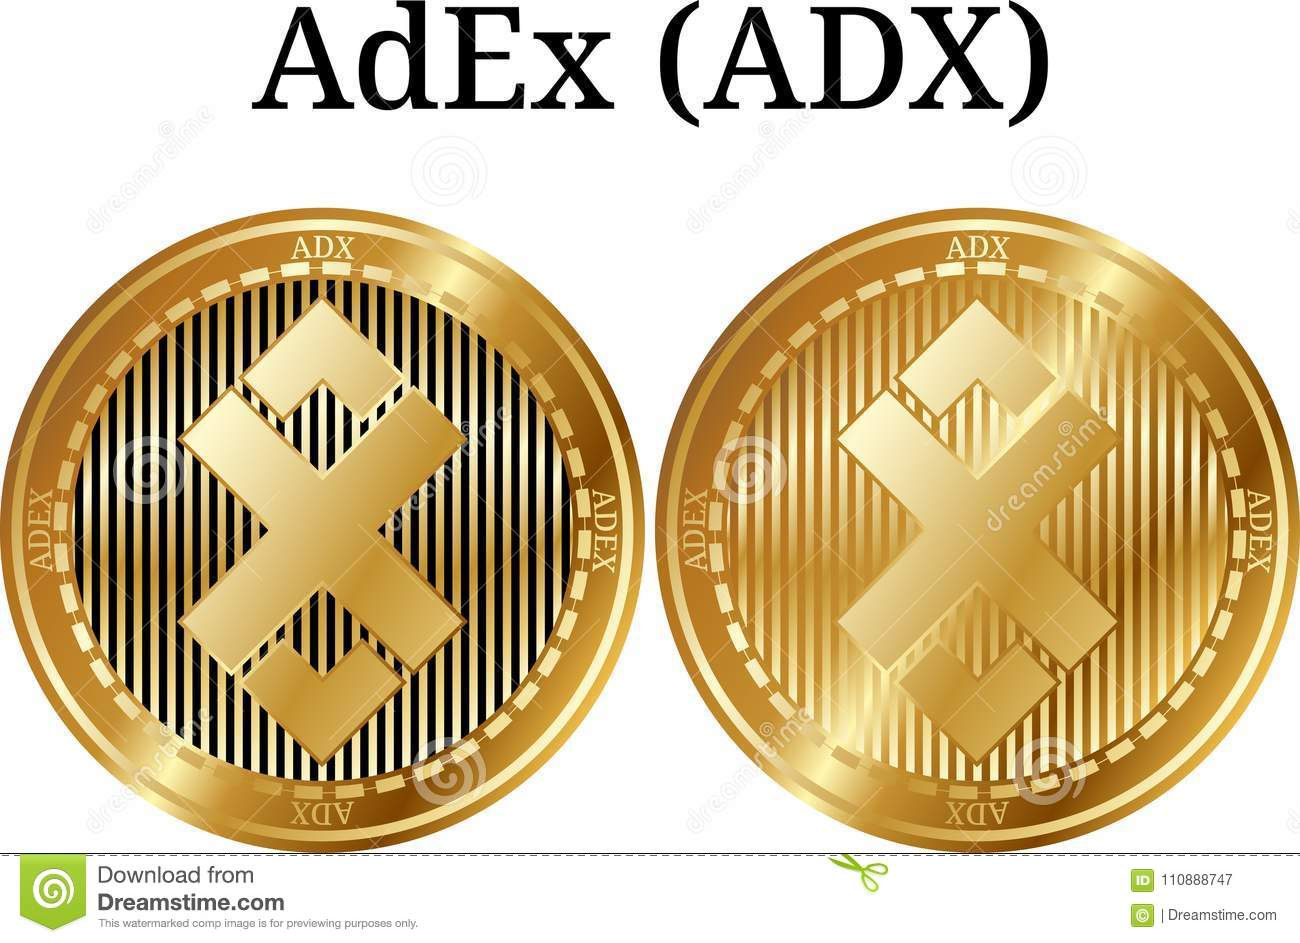 buy adex cryptocurrency